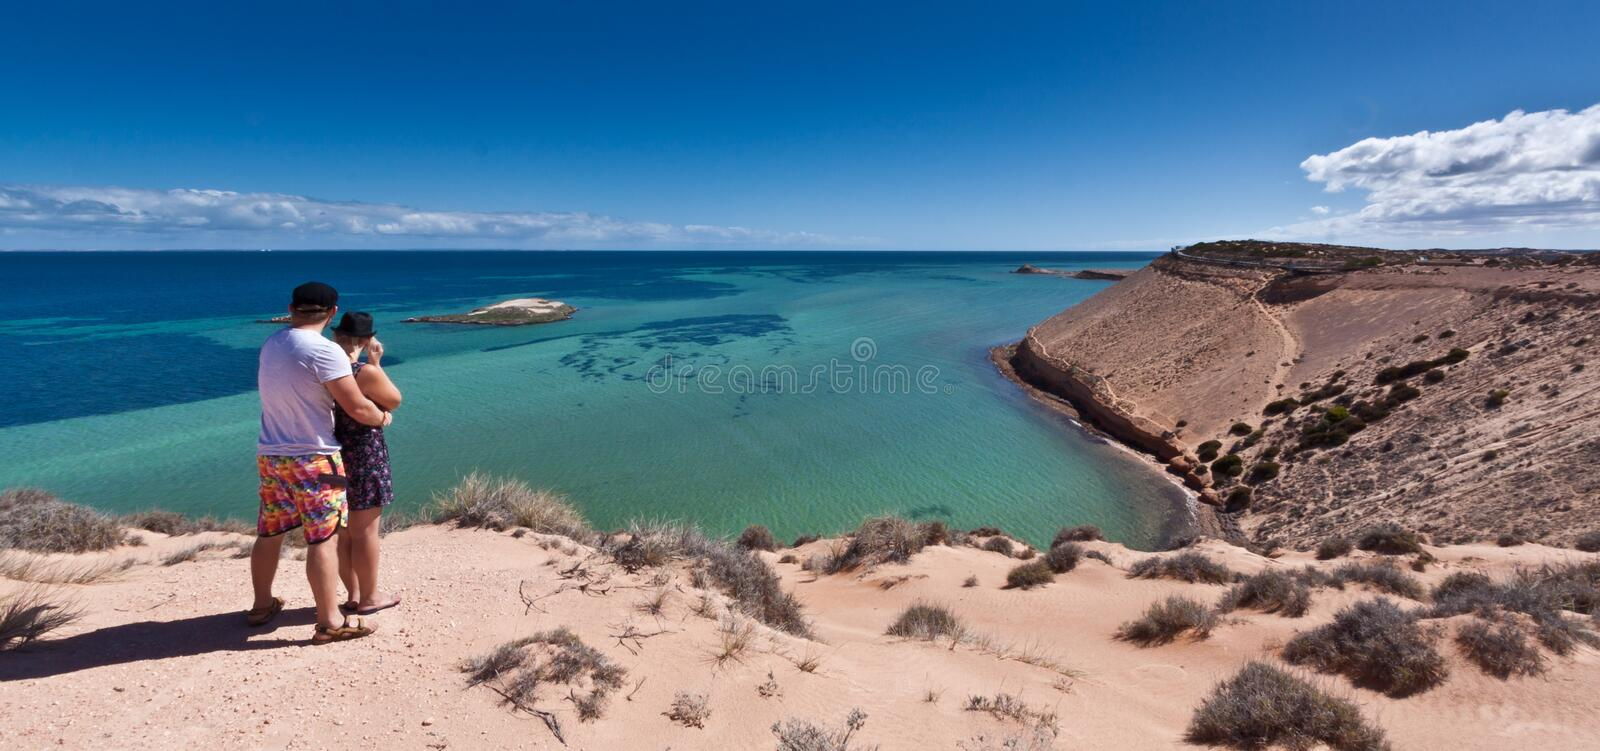 Eagle Bluff - Shark Bay World Heritage Area. The stunning clear waters and cliffs at Eagle Bluff at Shark Bay in the World Heritage Listed Area make a serene and royalty free stock photography